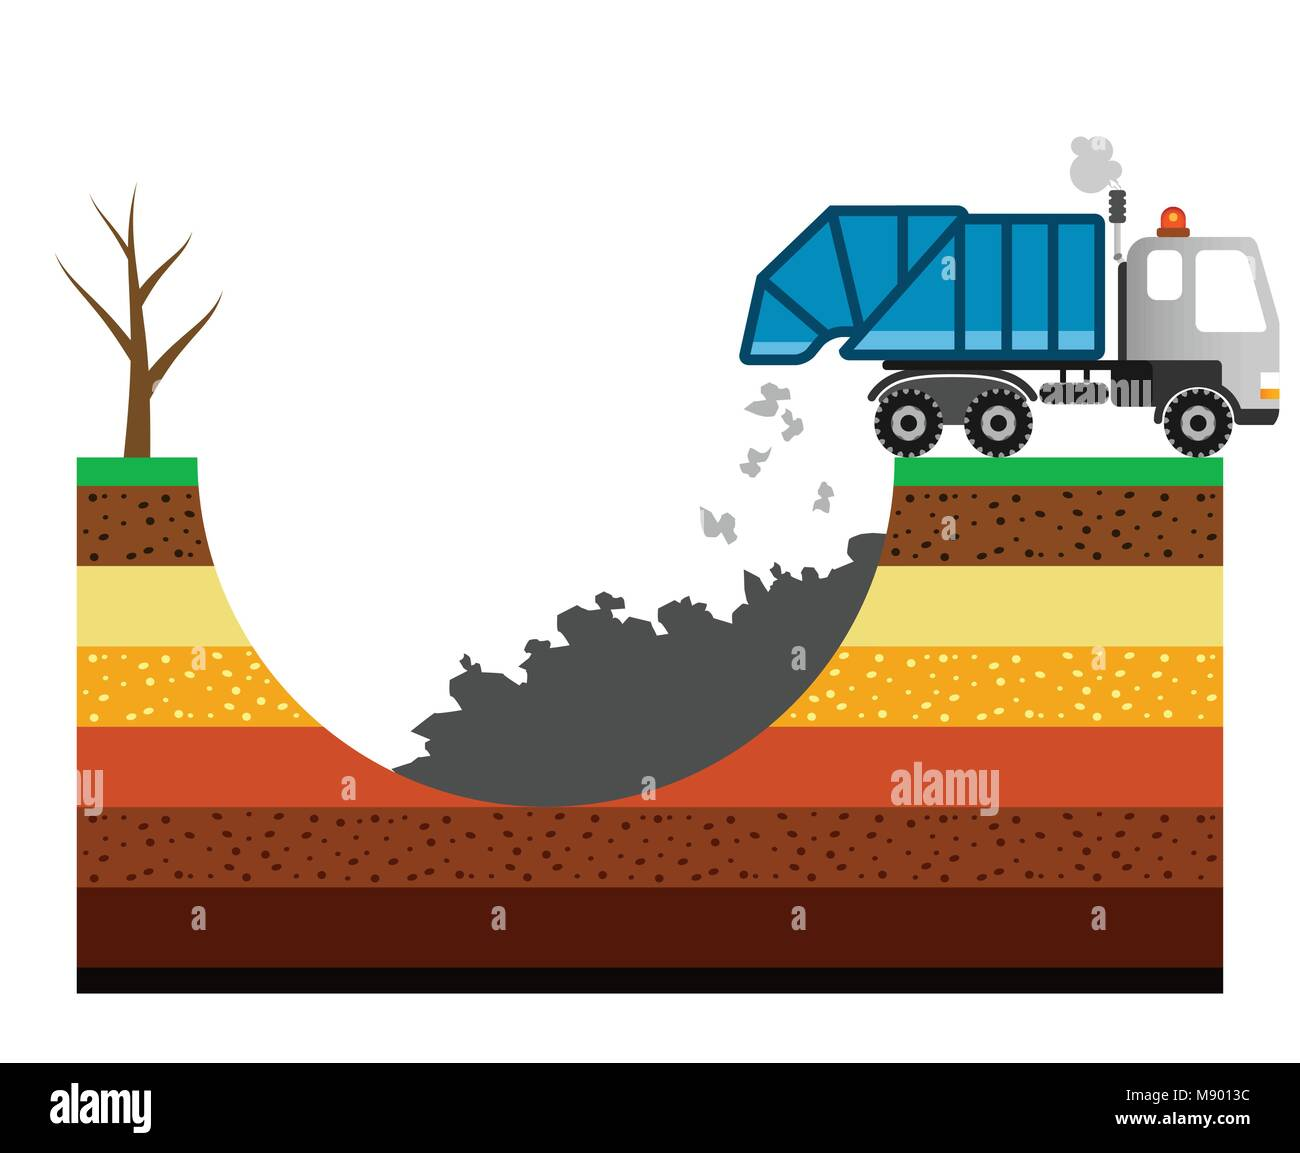 Environment pollution illustration with garbage truck. Poisoned soil. - Stock Vector